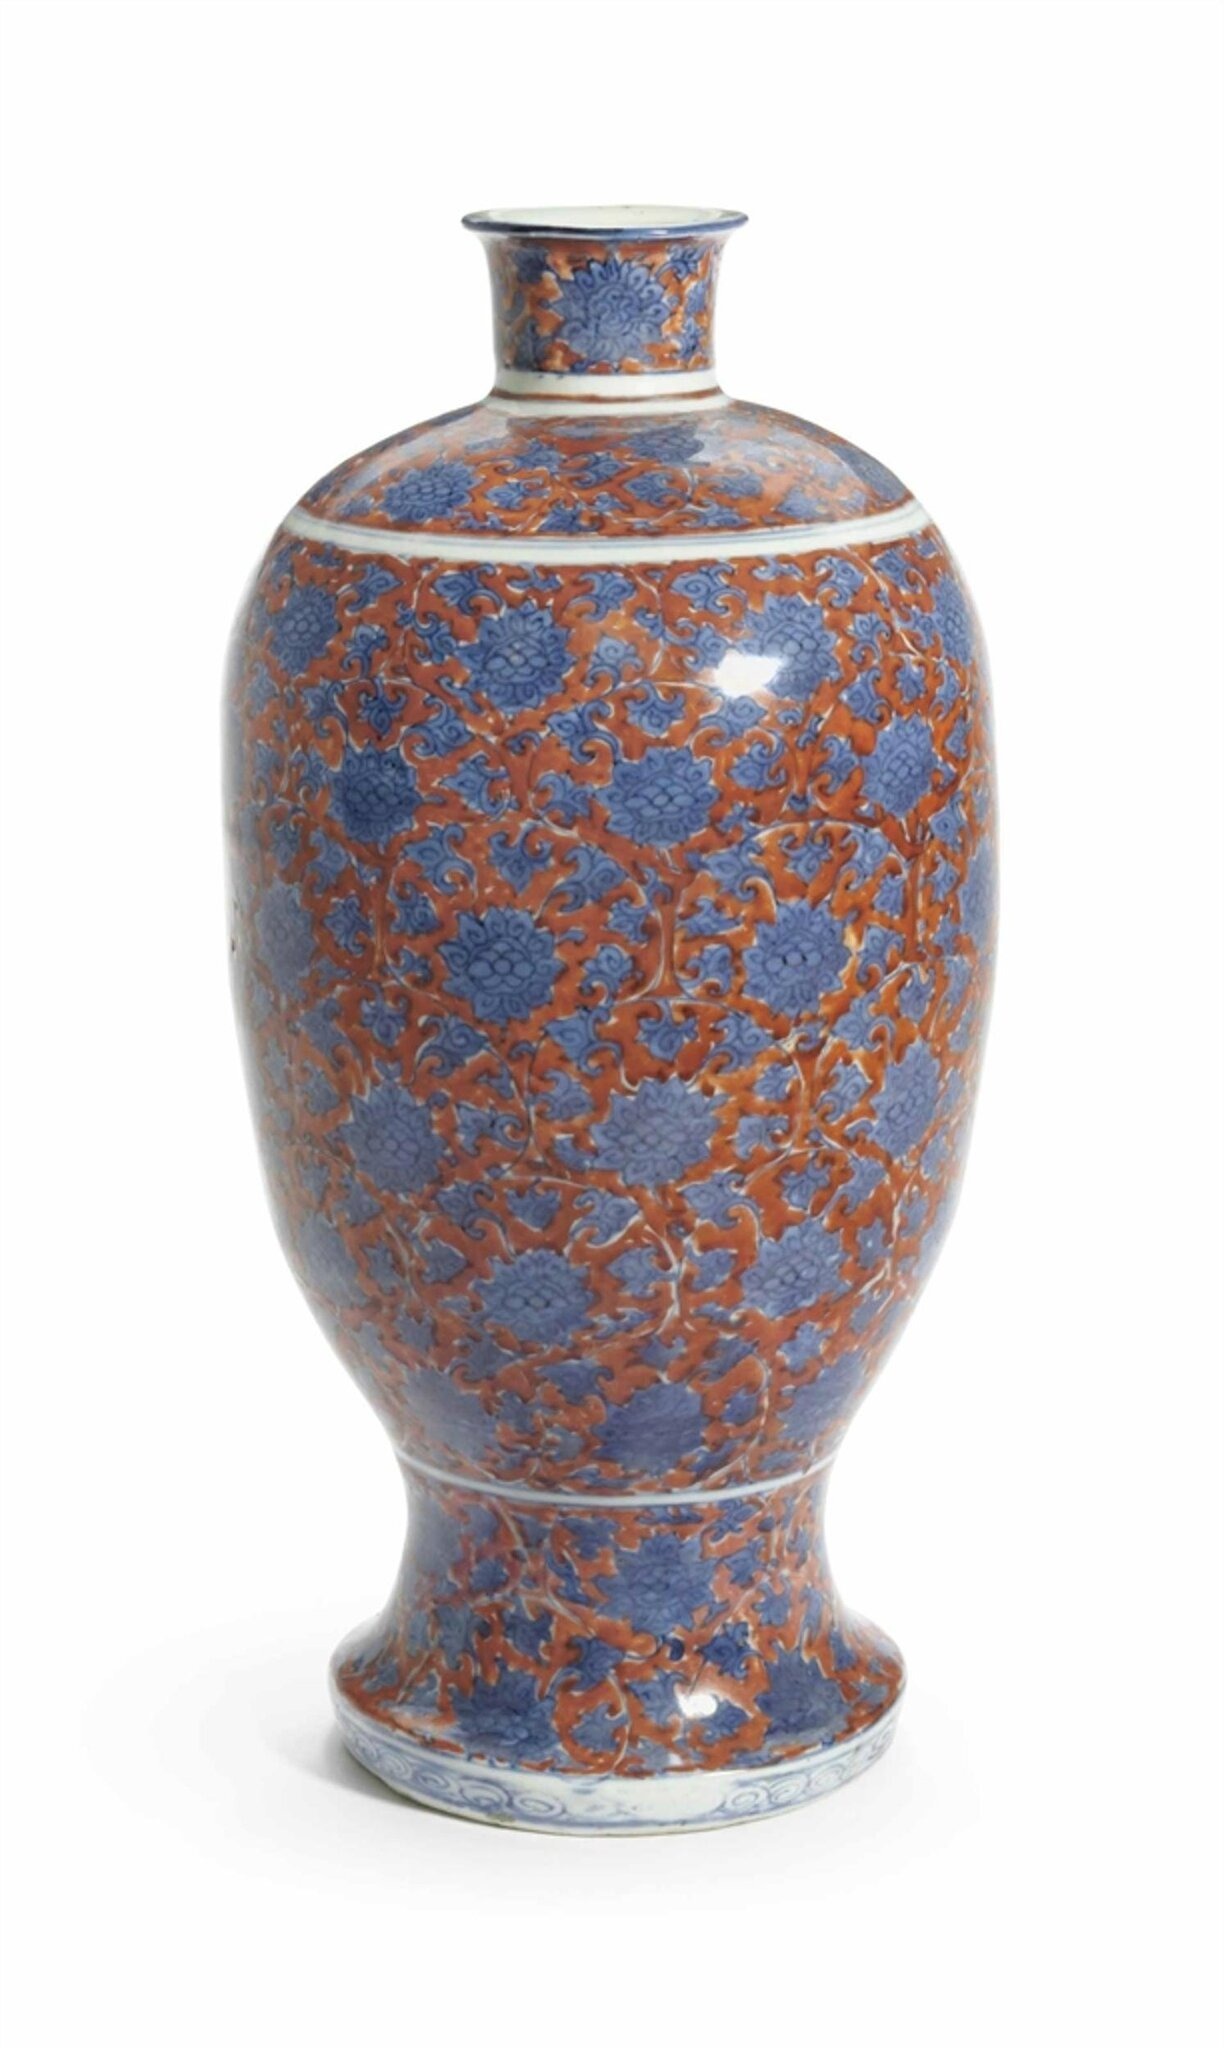 An iron-red-ground blue and white ovoid vase, Ming dynasty, 16th-17th century